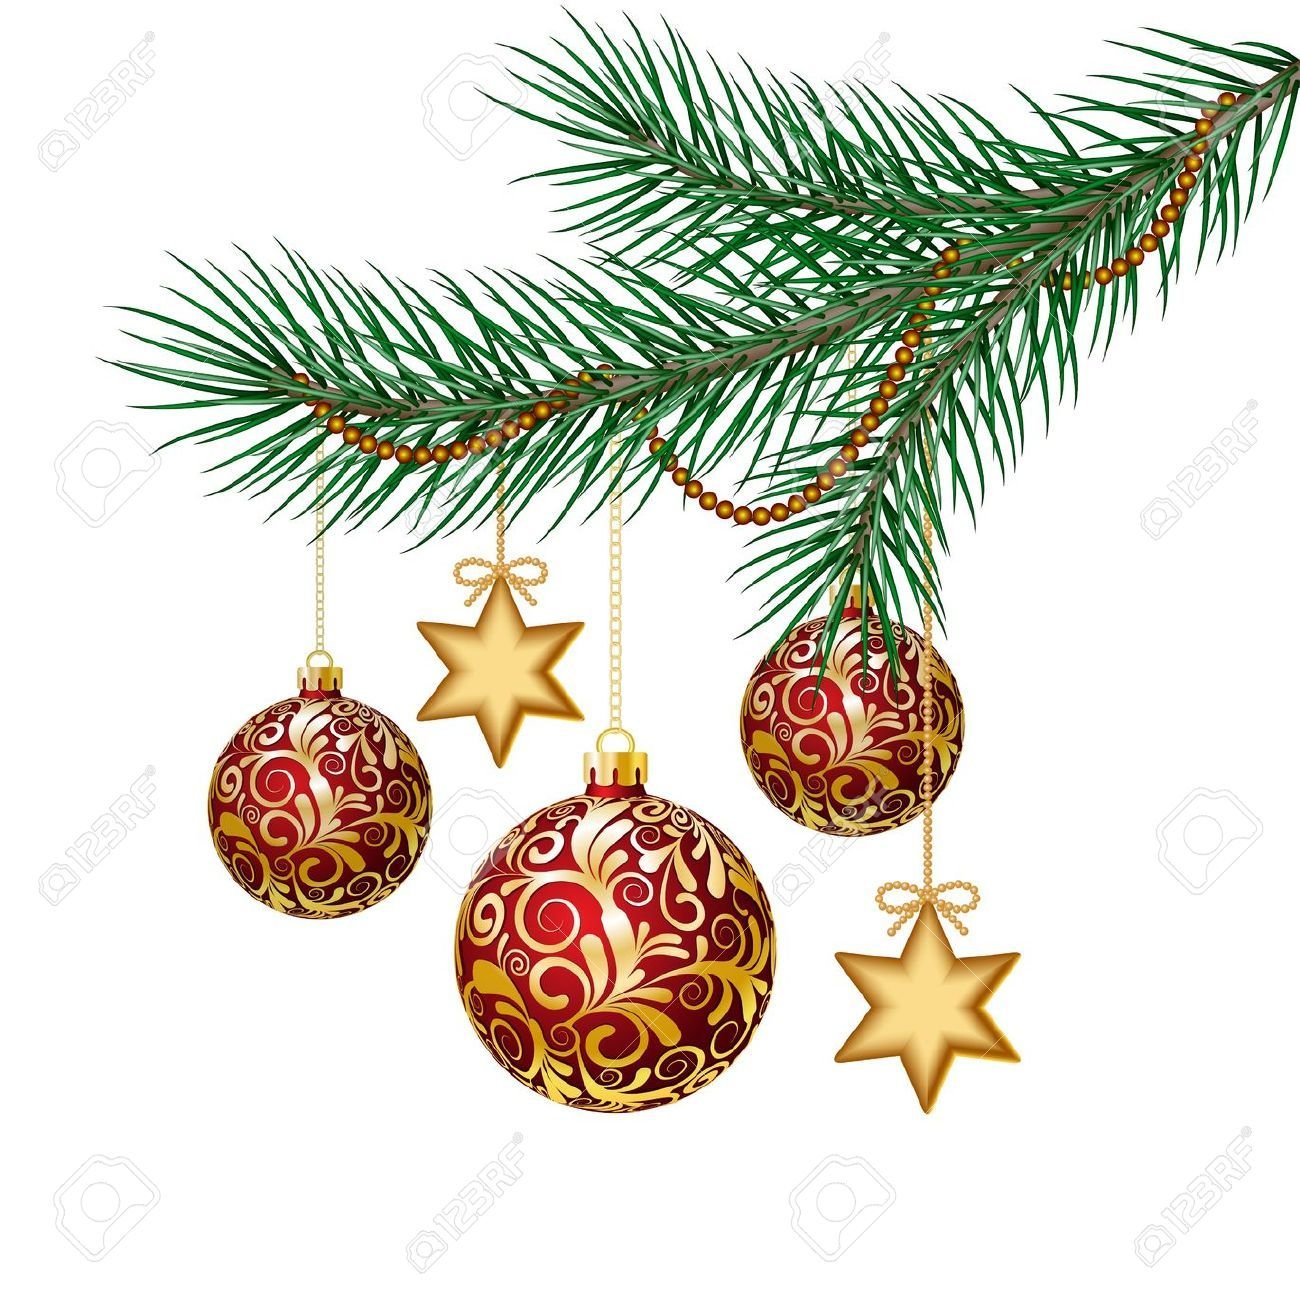 christmas tree branch vector - photo #12